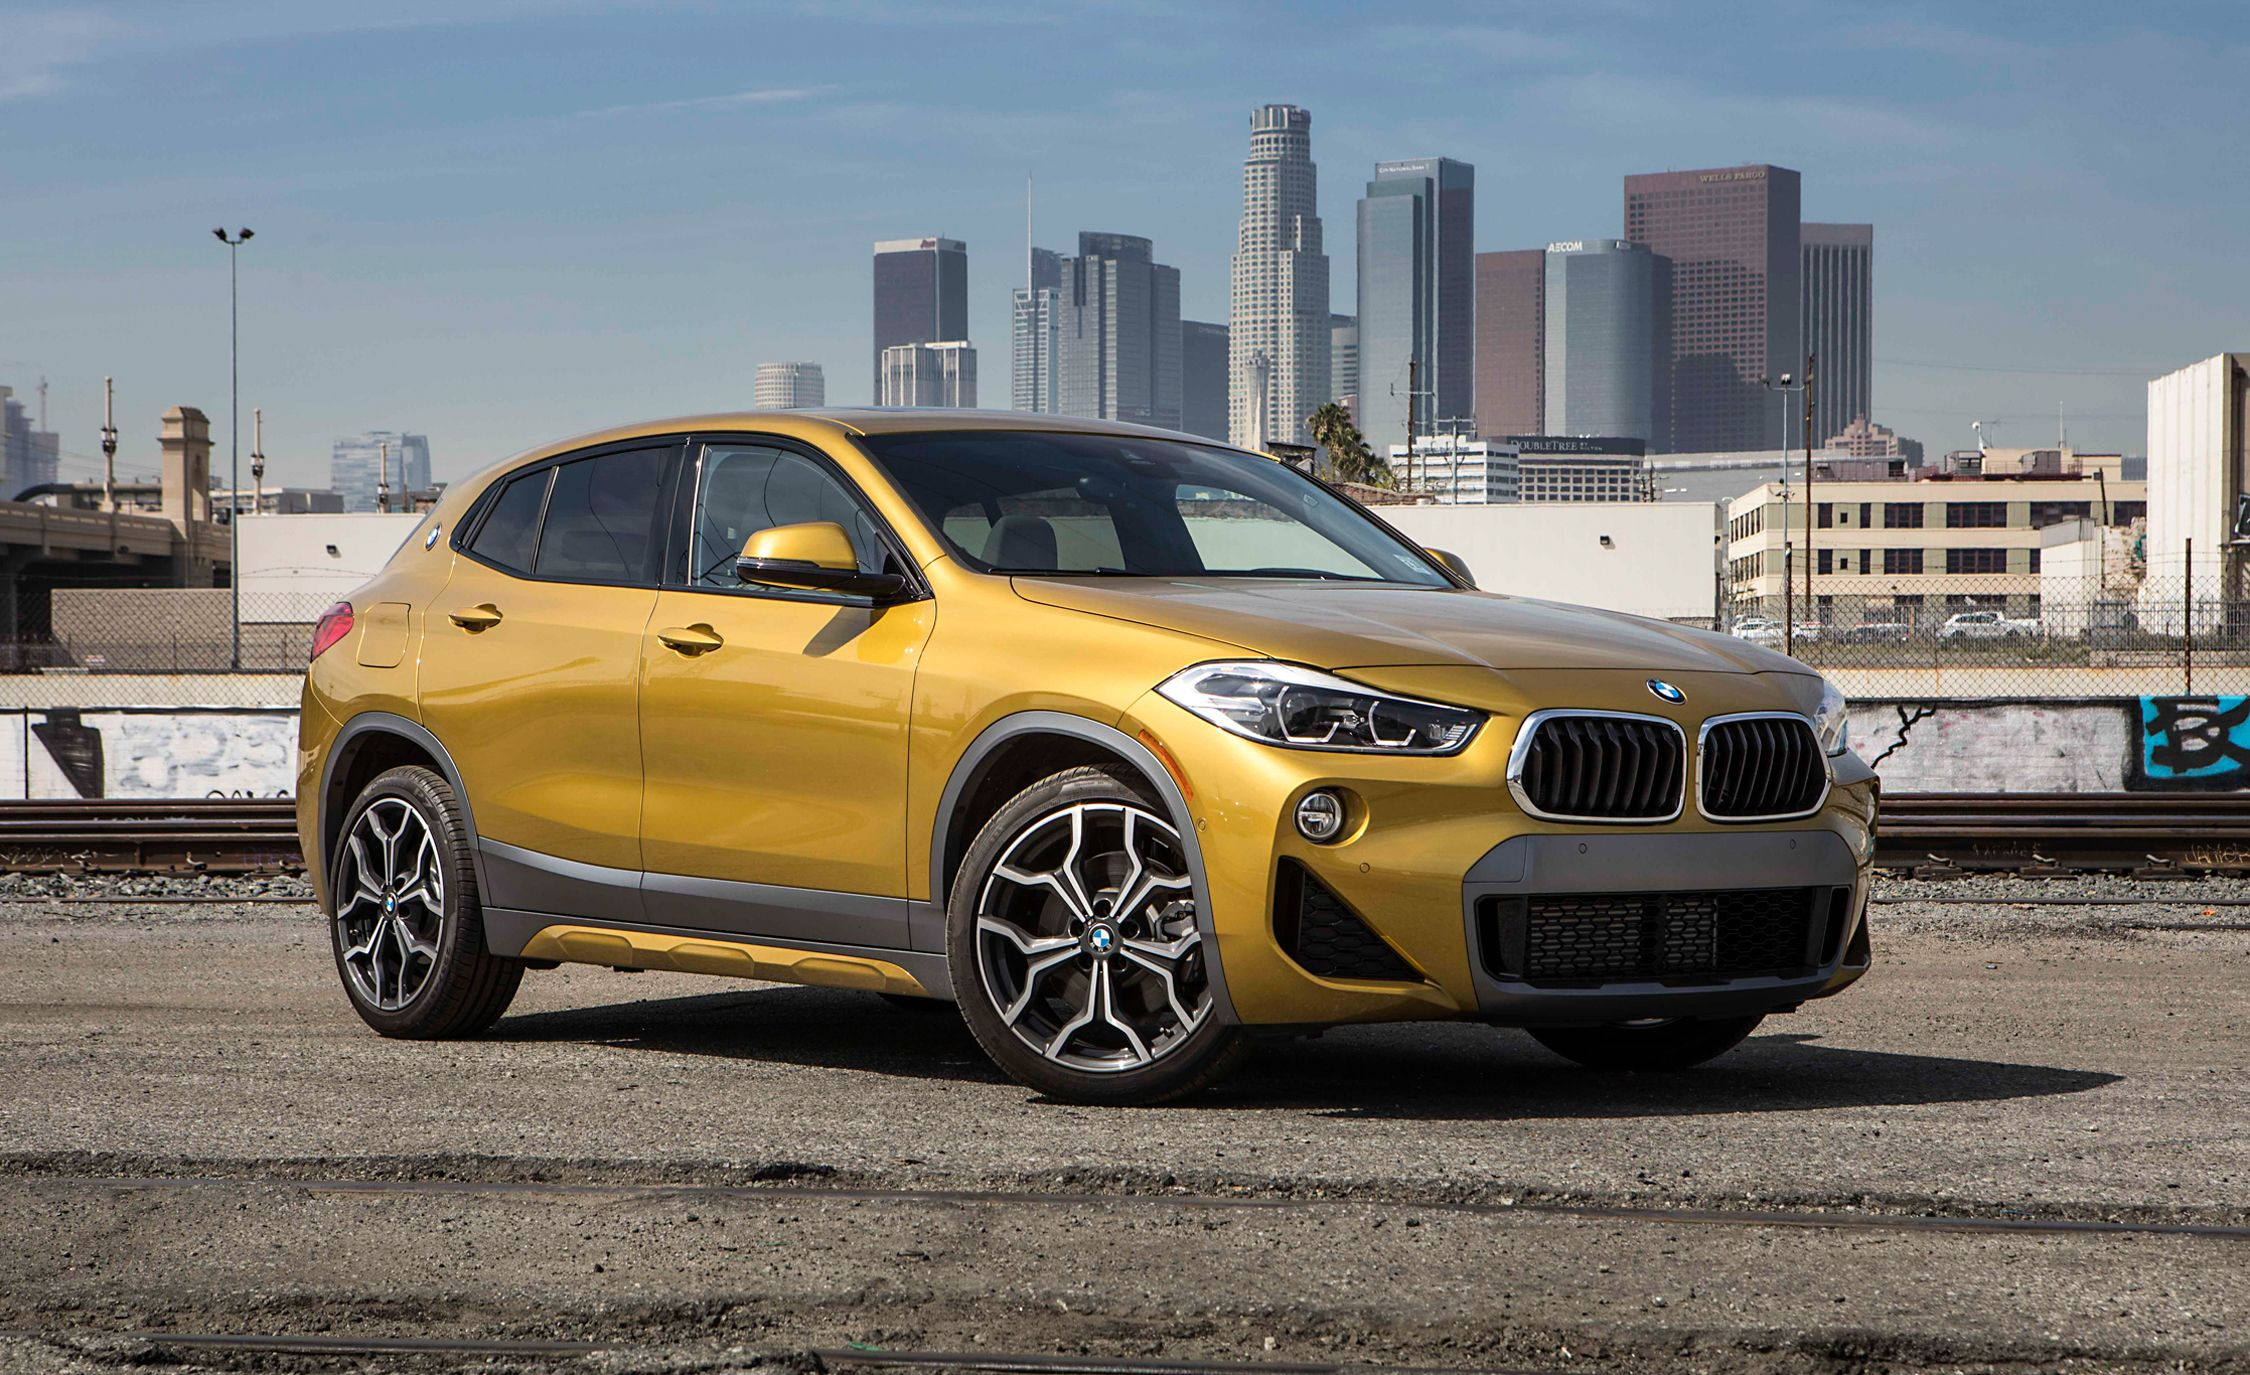 BMW X2 Reviews | BMW X2 Price, Photos, and Specs | Car and Driver